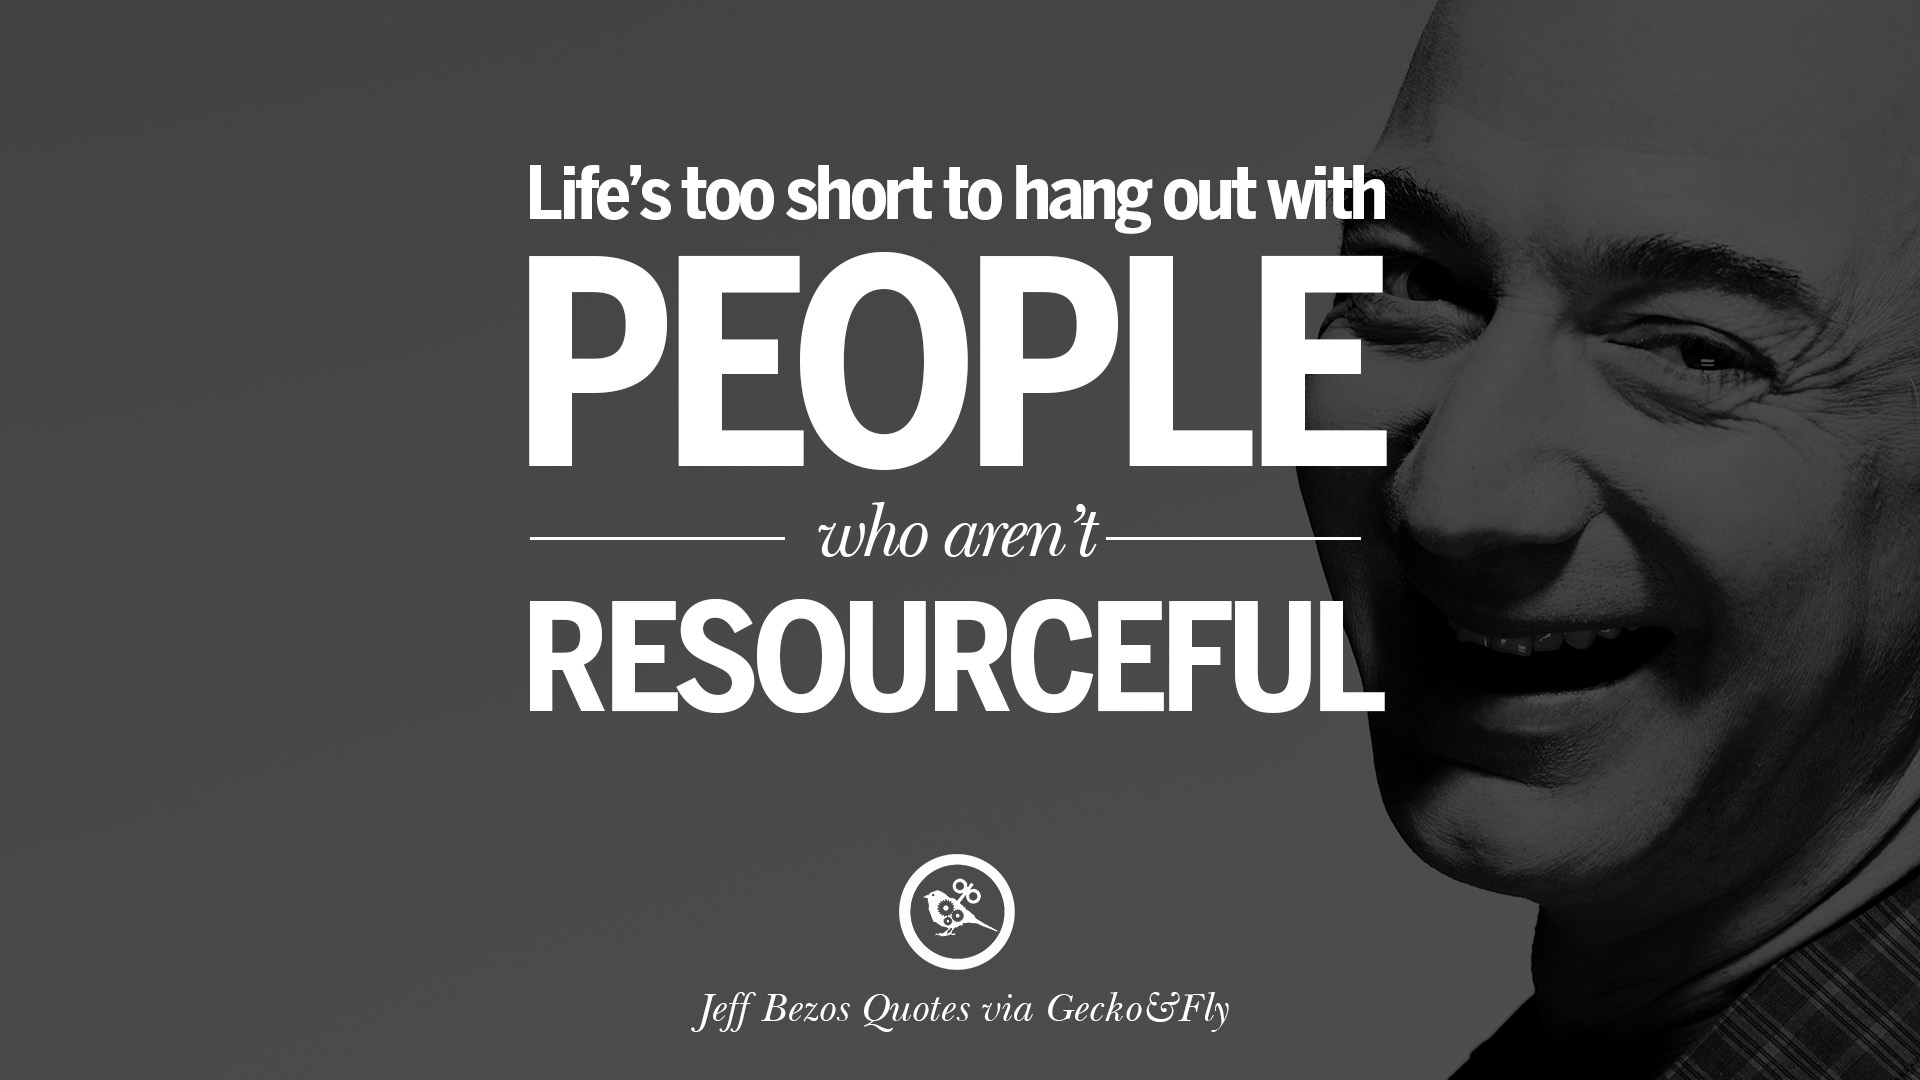 Lifes Too Short Quotes 20 Famous Jeff Bezos Quotes On Innovation Business Commerce And